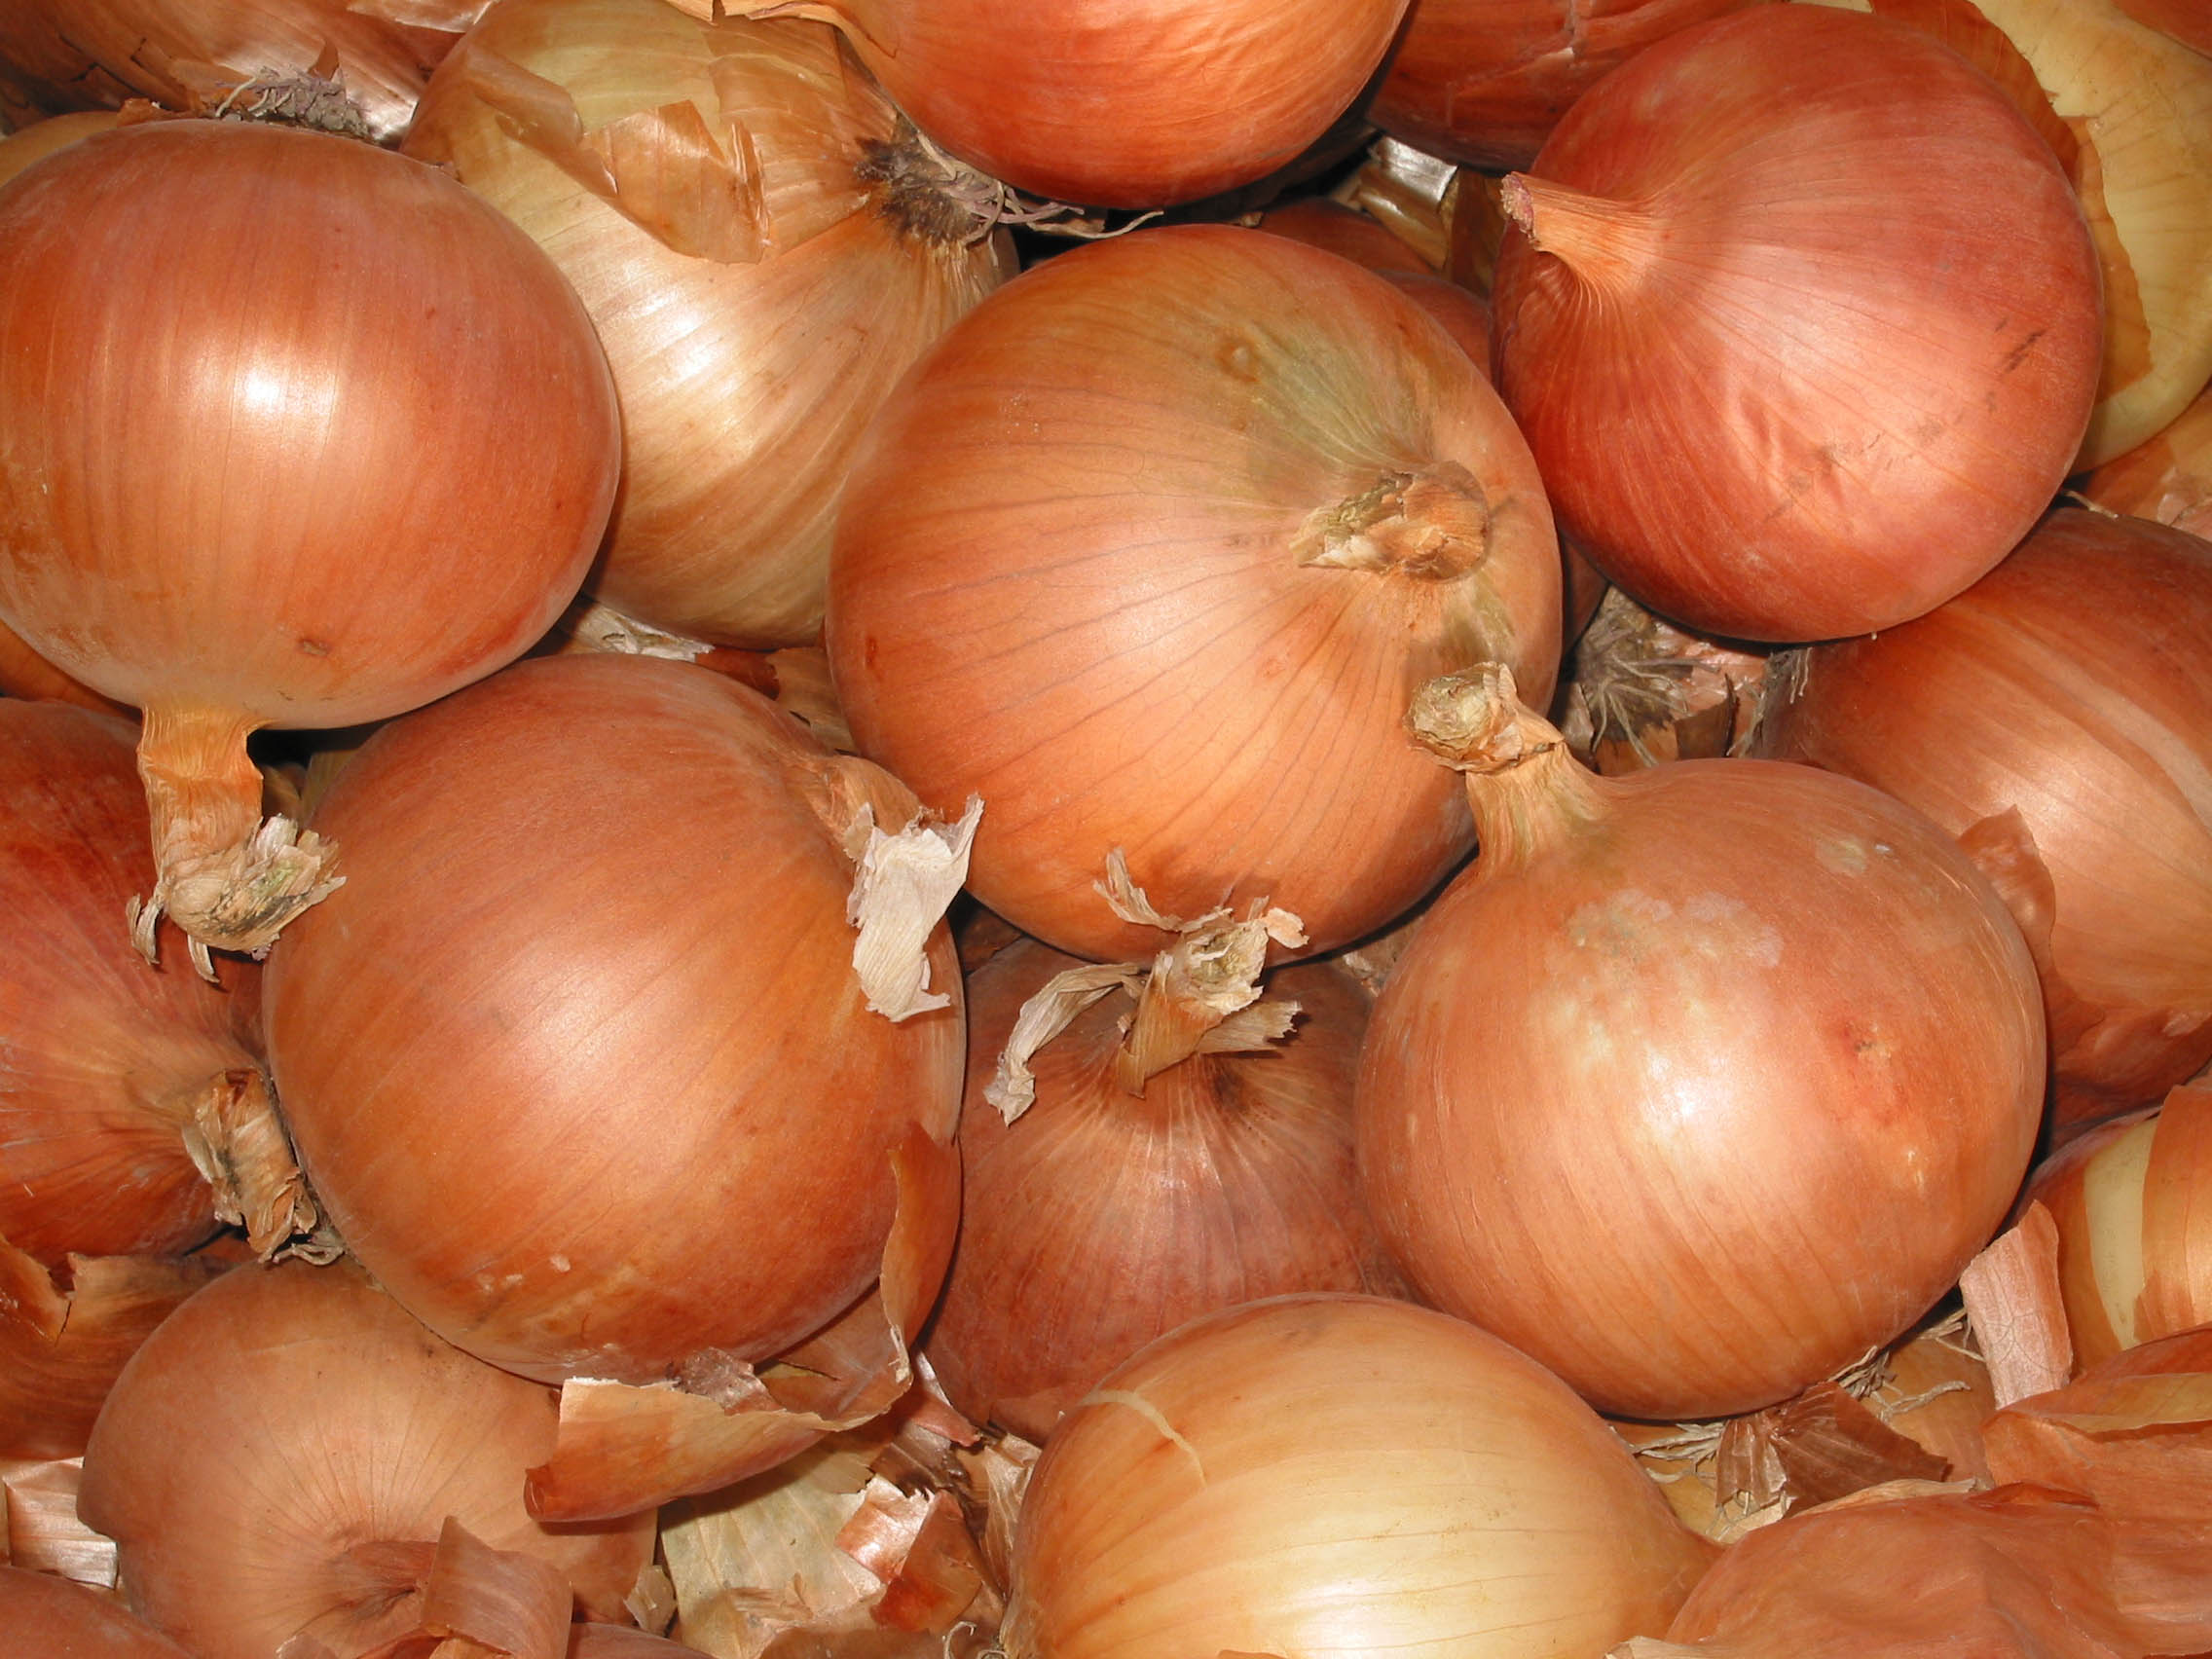 A sampling of Vaqeuro Onions, one of the many varieties grown and tested at the Malheur Experiment Station.